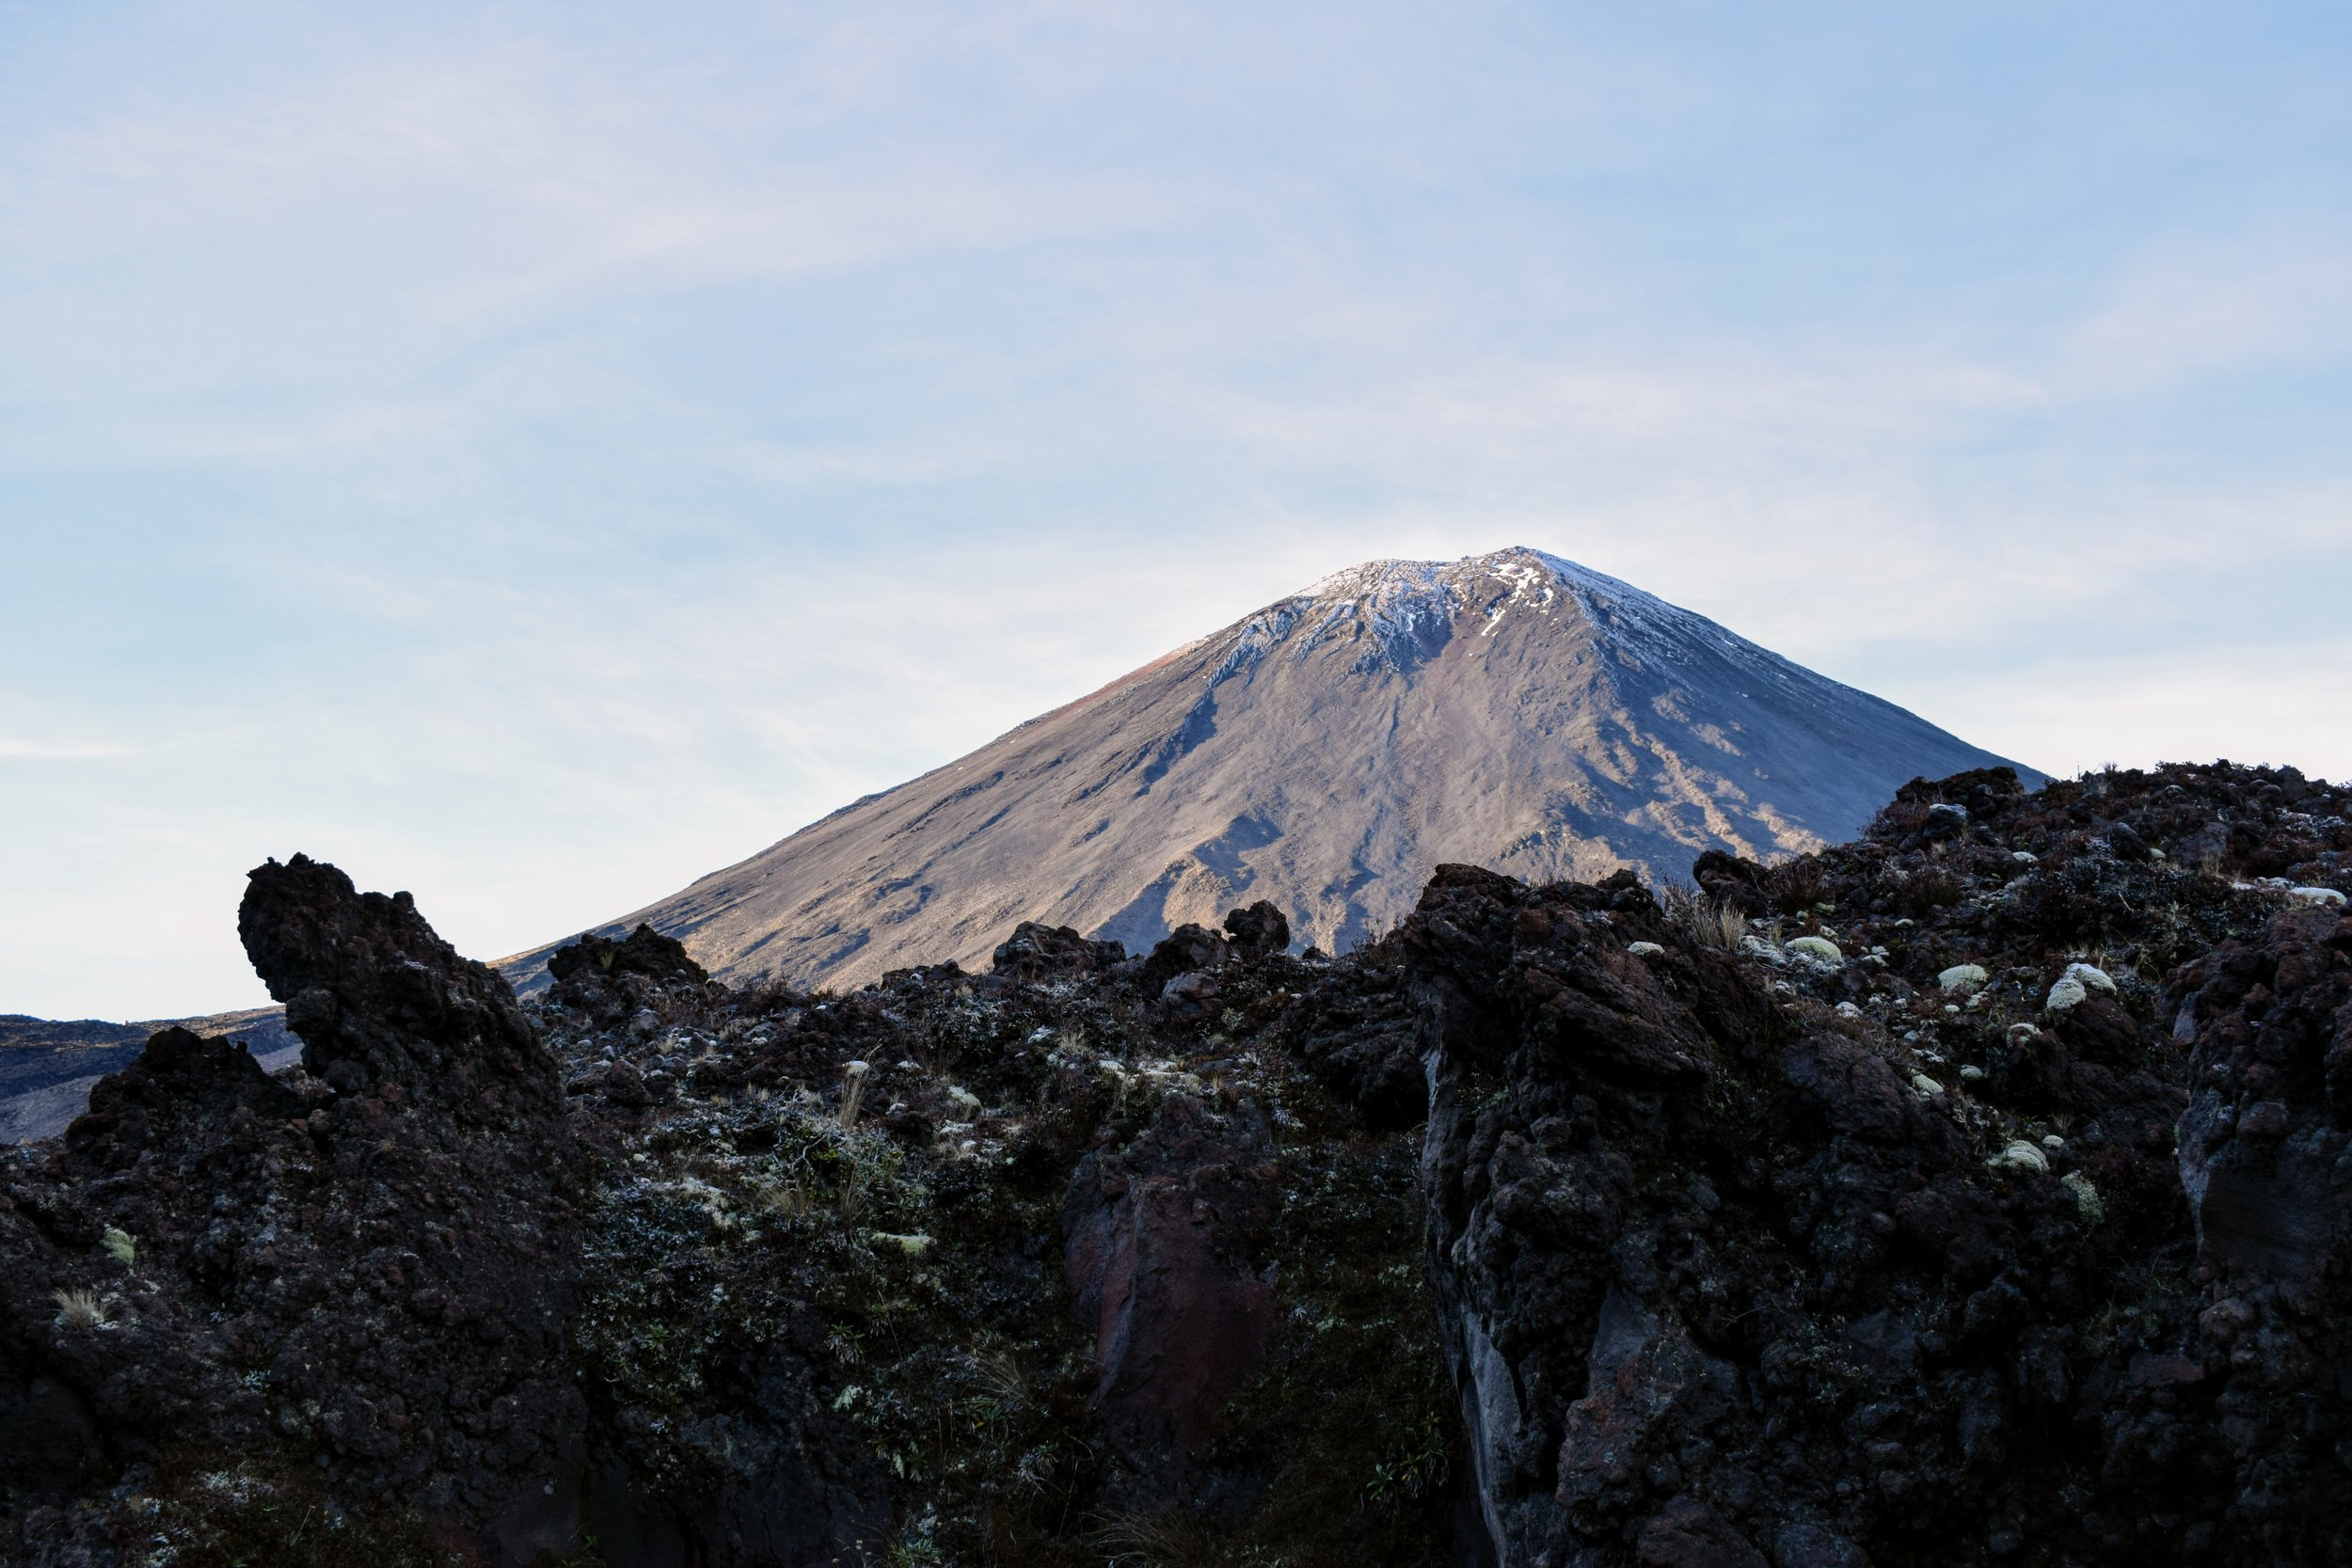 Mount Ngauruhoe as seen from the track near Mangatepopo Hut.